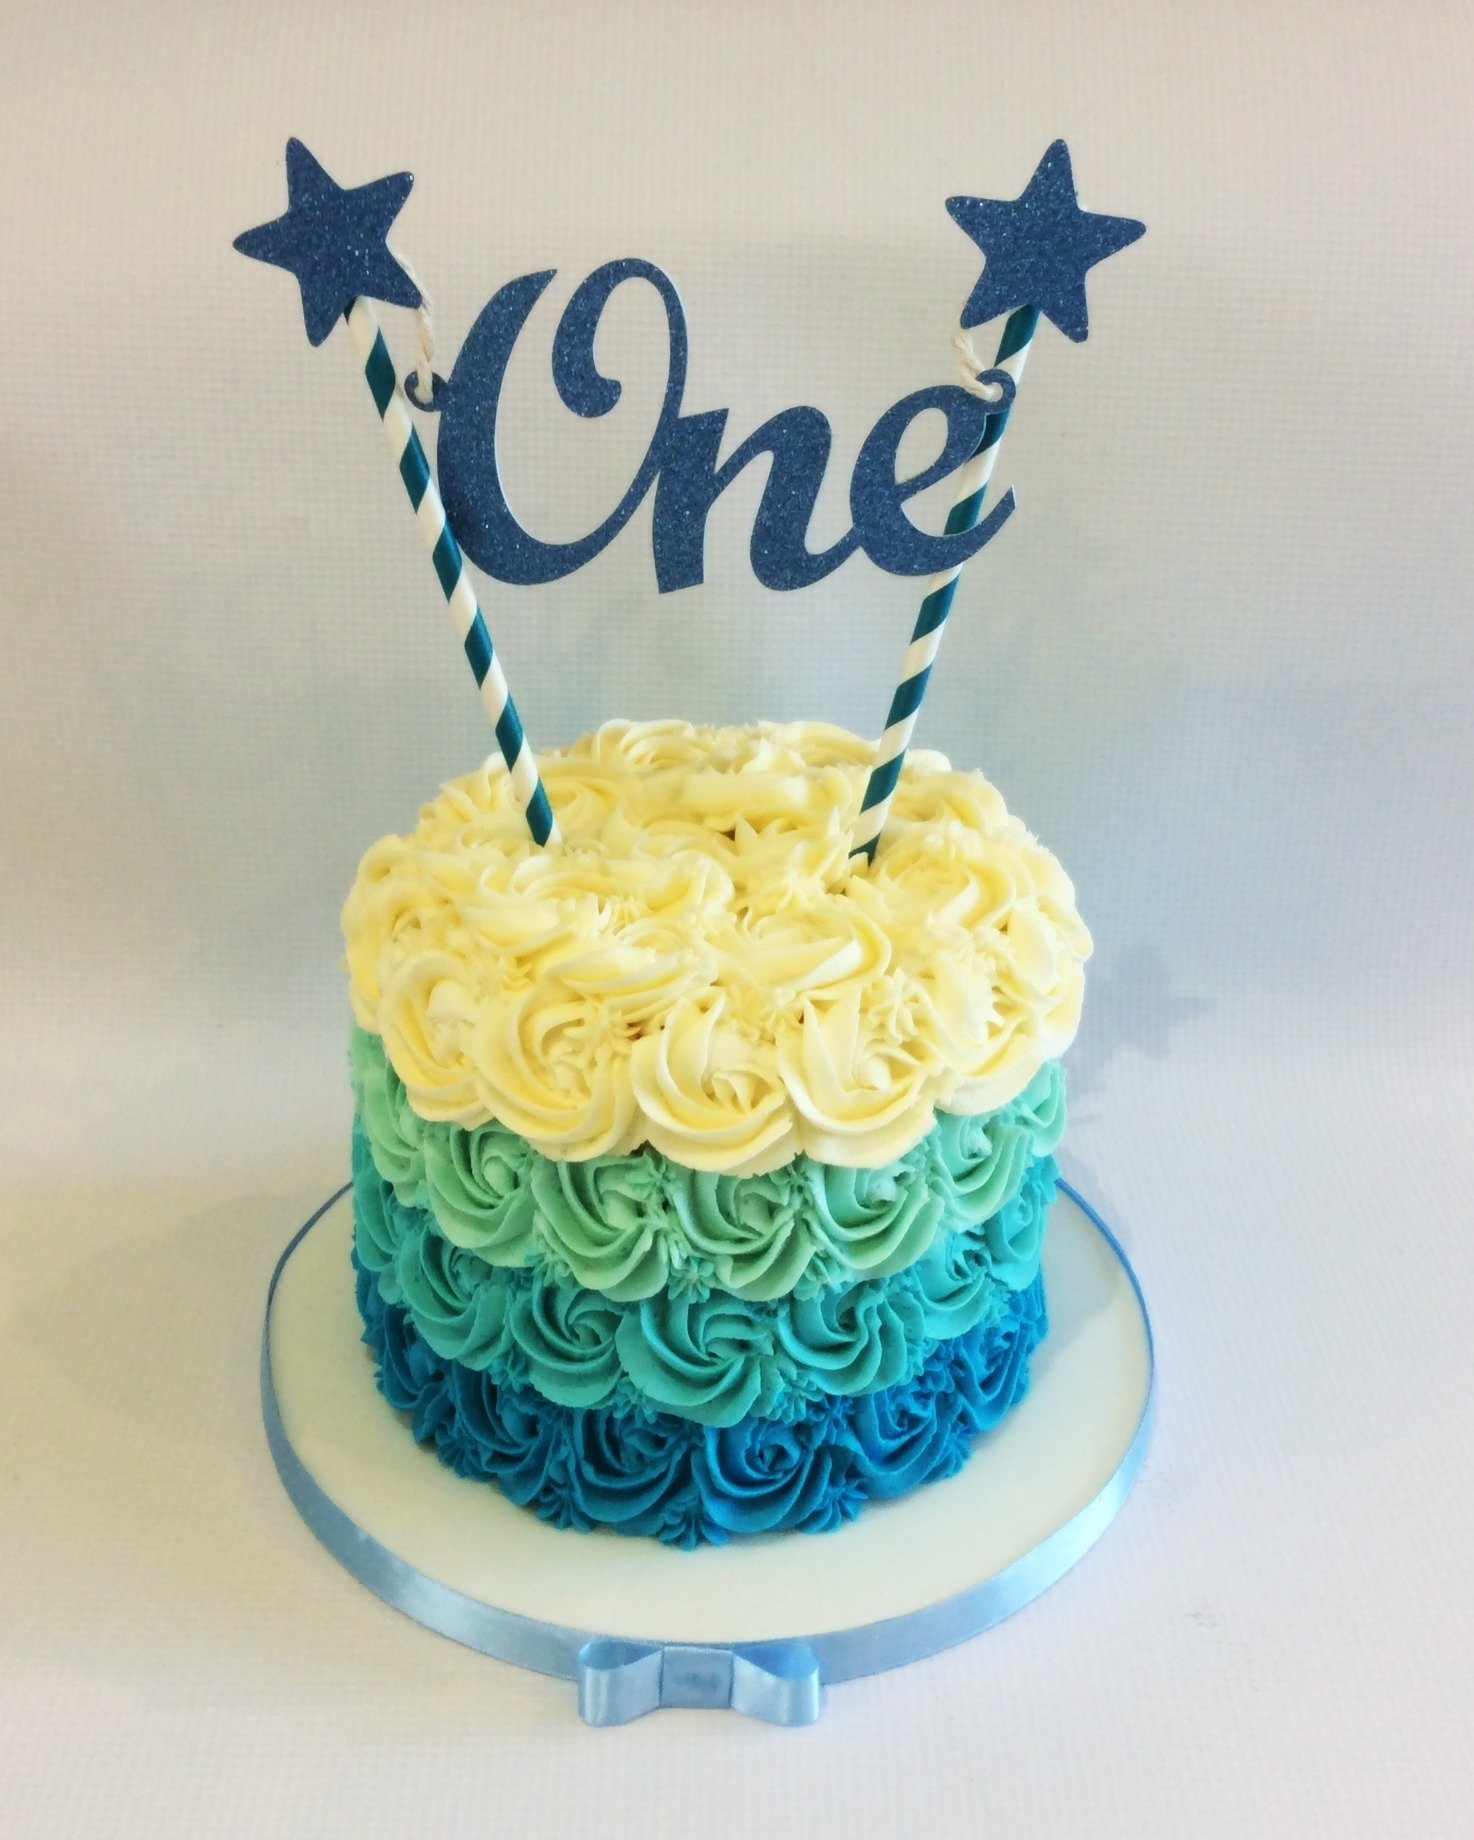 10 Cute Baby Boy First Birthday Cake Ideas boys first birthday smash cake cakes for landrys first 1